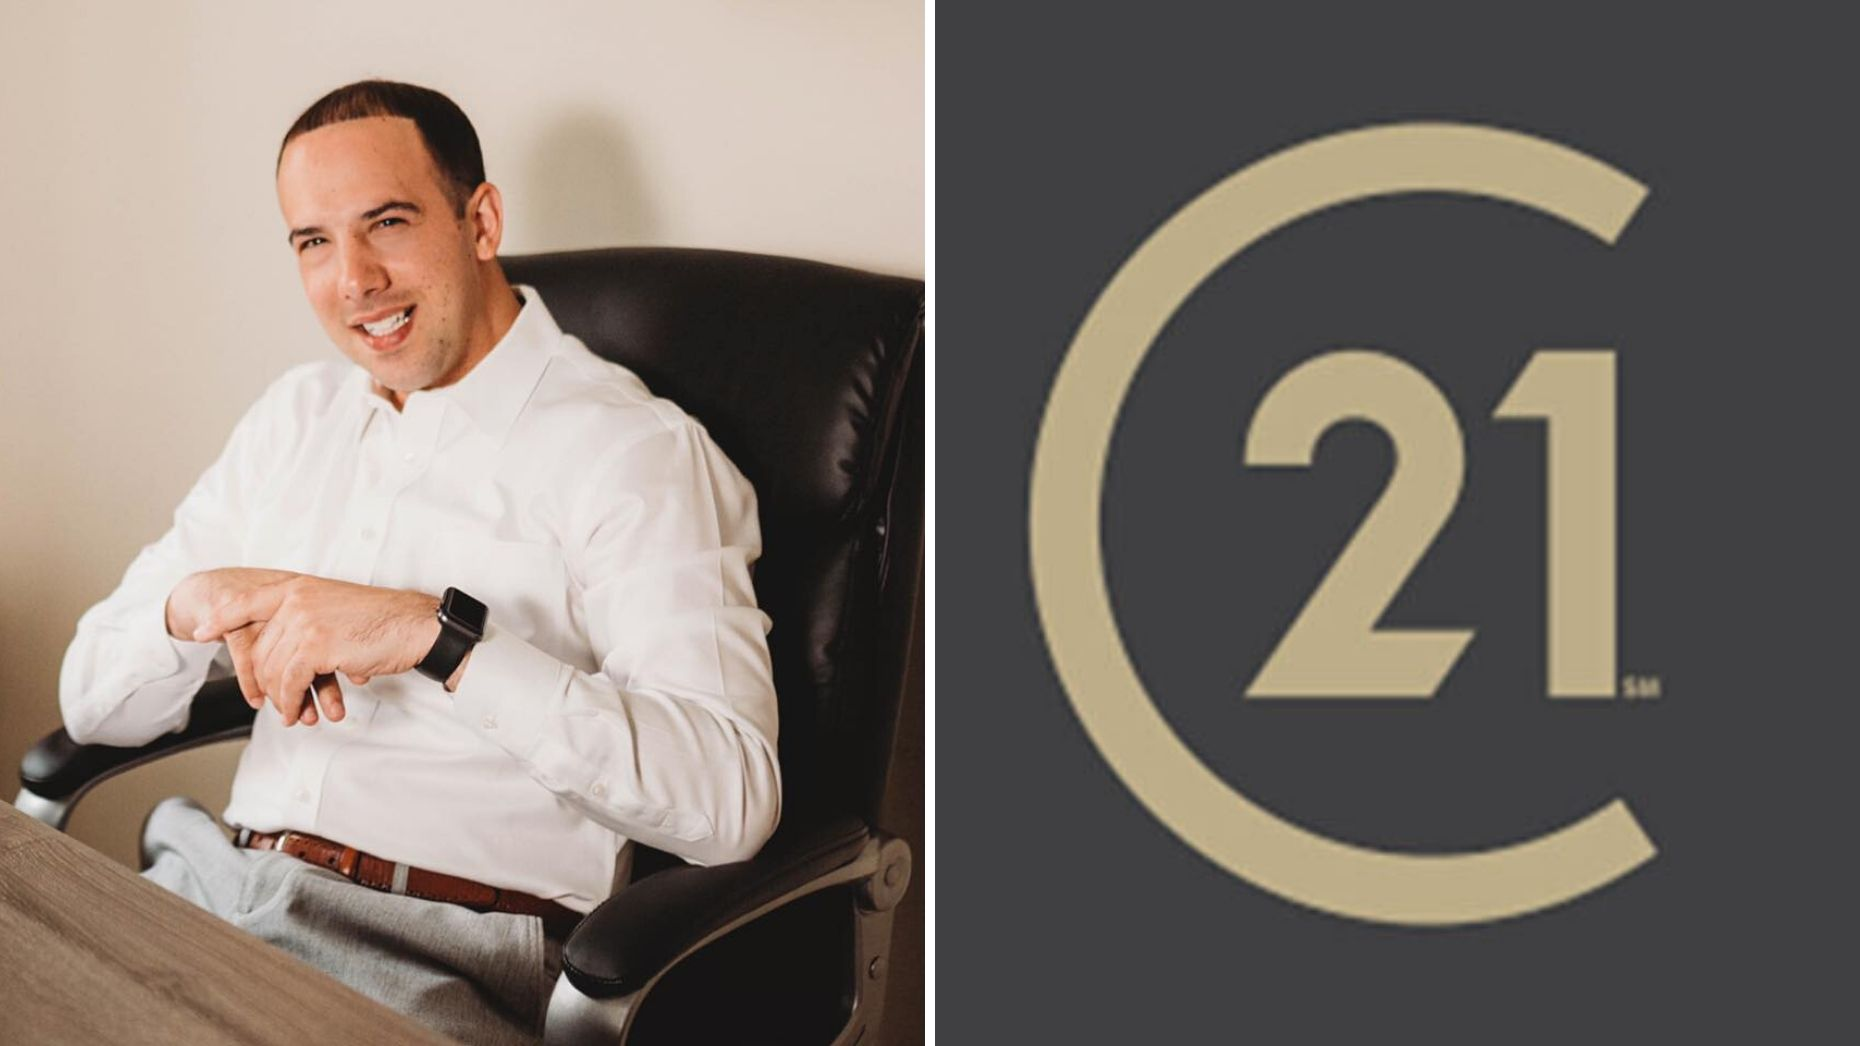 Century 21 brings on top-ranked Keller Williams agent and his team